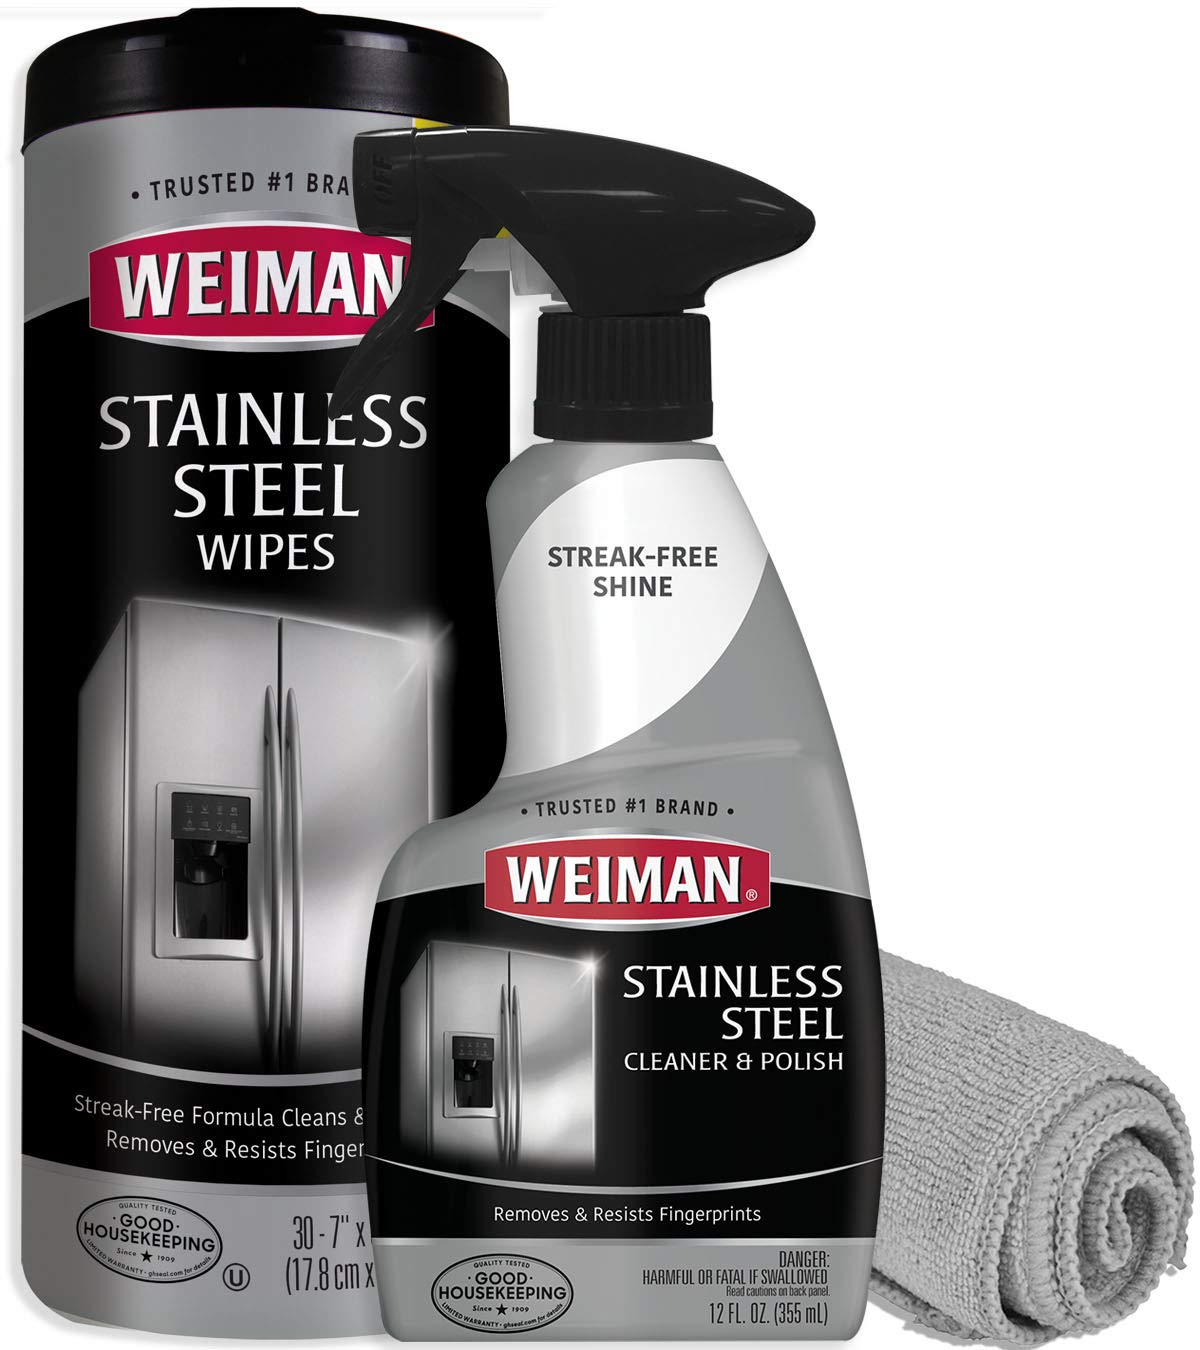 Weiman Stainless Steel Cleaner Kit - Fingerprint Resistant, Removes Residue, Water Marks and Grease from Appliances - Works Great on Refrigerators, Dishwashers, Ovens, and Grills by Weiman